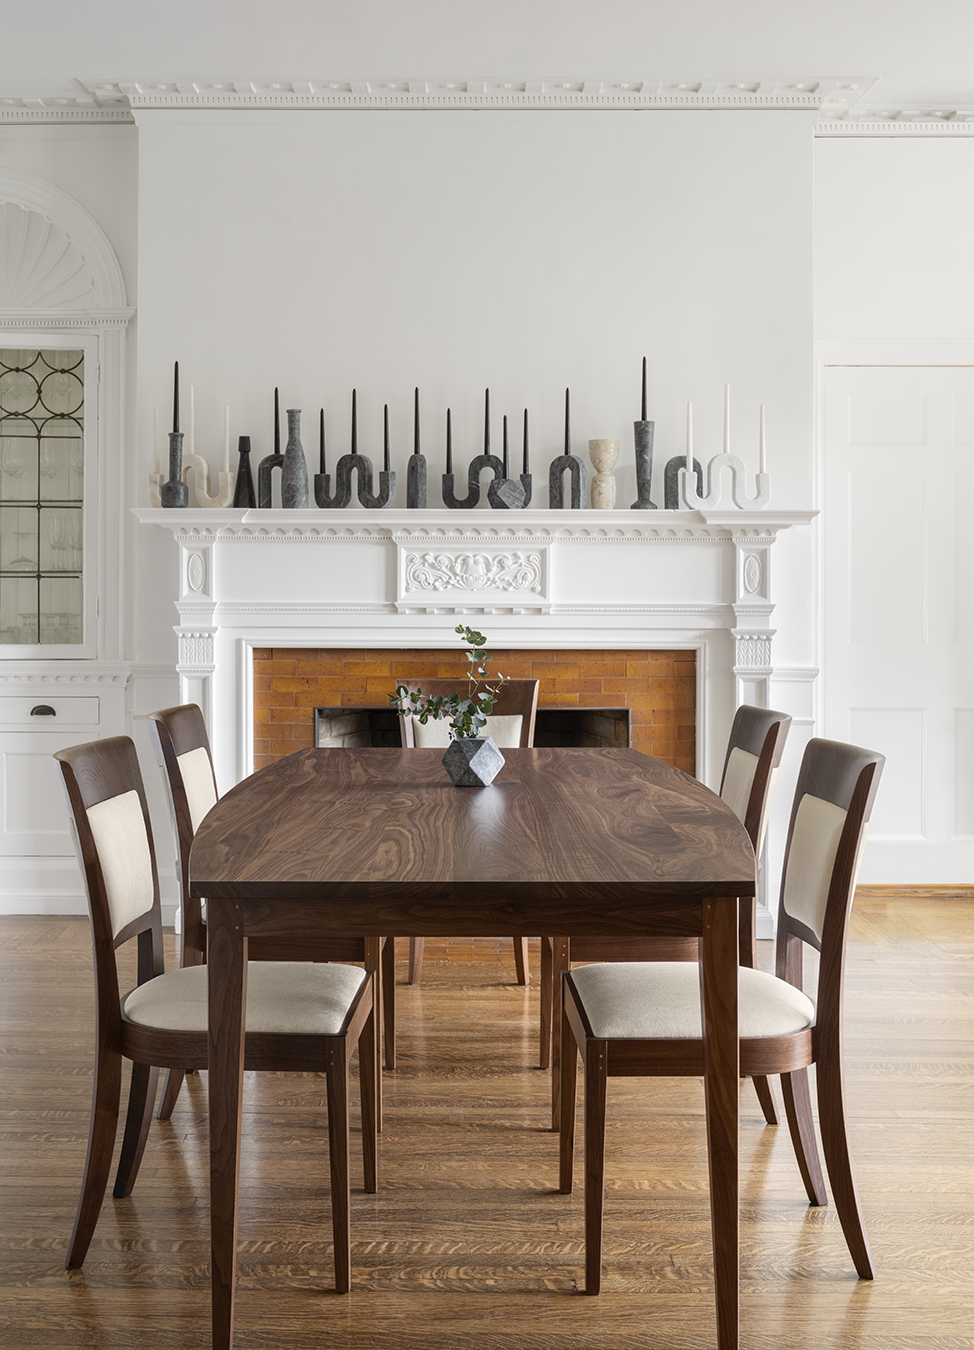 """Some things truly are timeless. Such as the pleasure of living with functional art every day. Our tables and chairs are handmade, resulting in both immediate and lasting joy. As one customer put it, """"functionally and ergonomically exquisite."""" Does the setting where family memories are made deserve anything less? #dining #diningroom #moderndining #diningroomtable #diningchairs #walnutfurniture"""